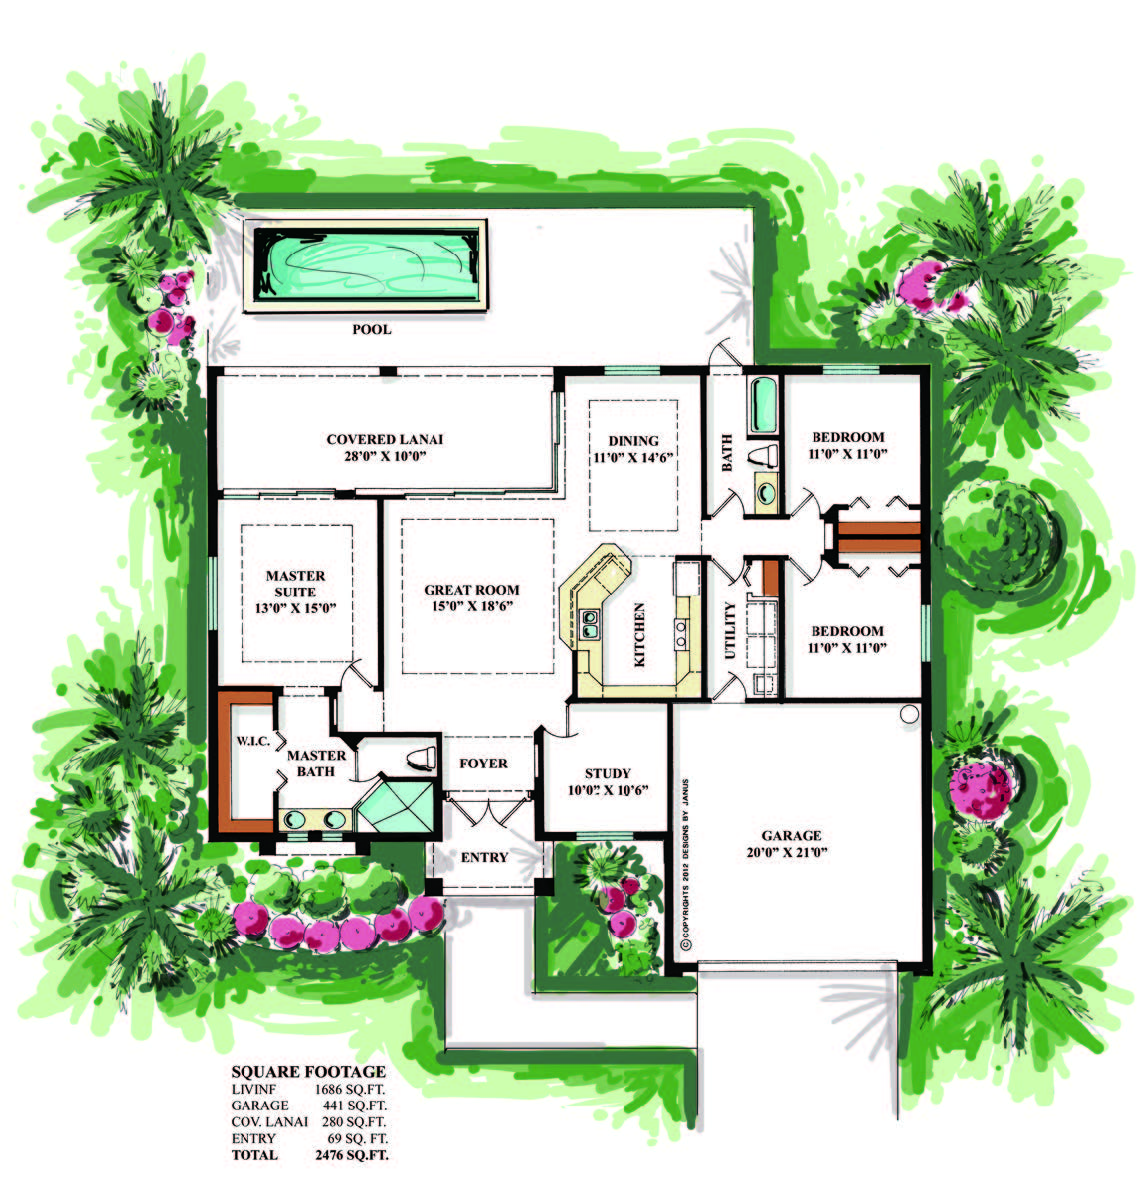 Agualinda floor plan distribution